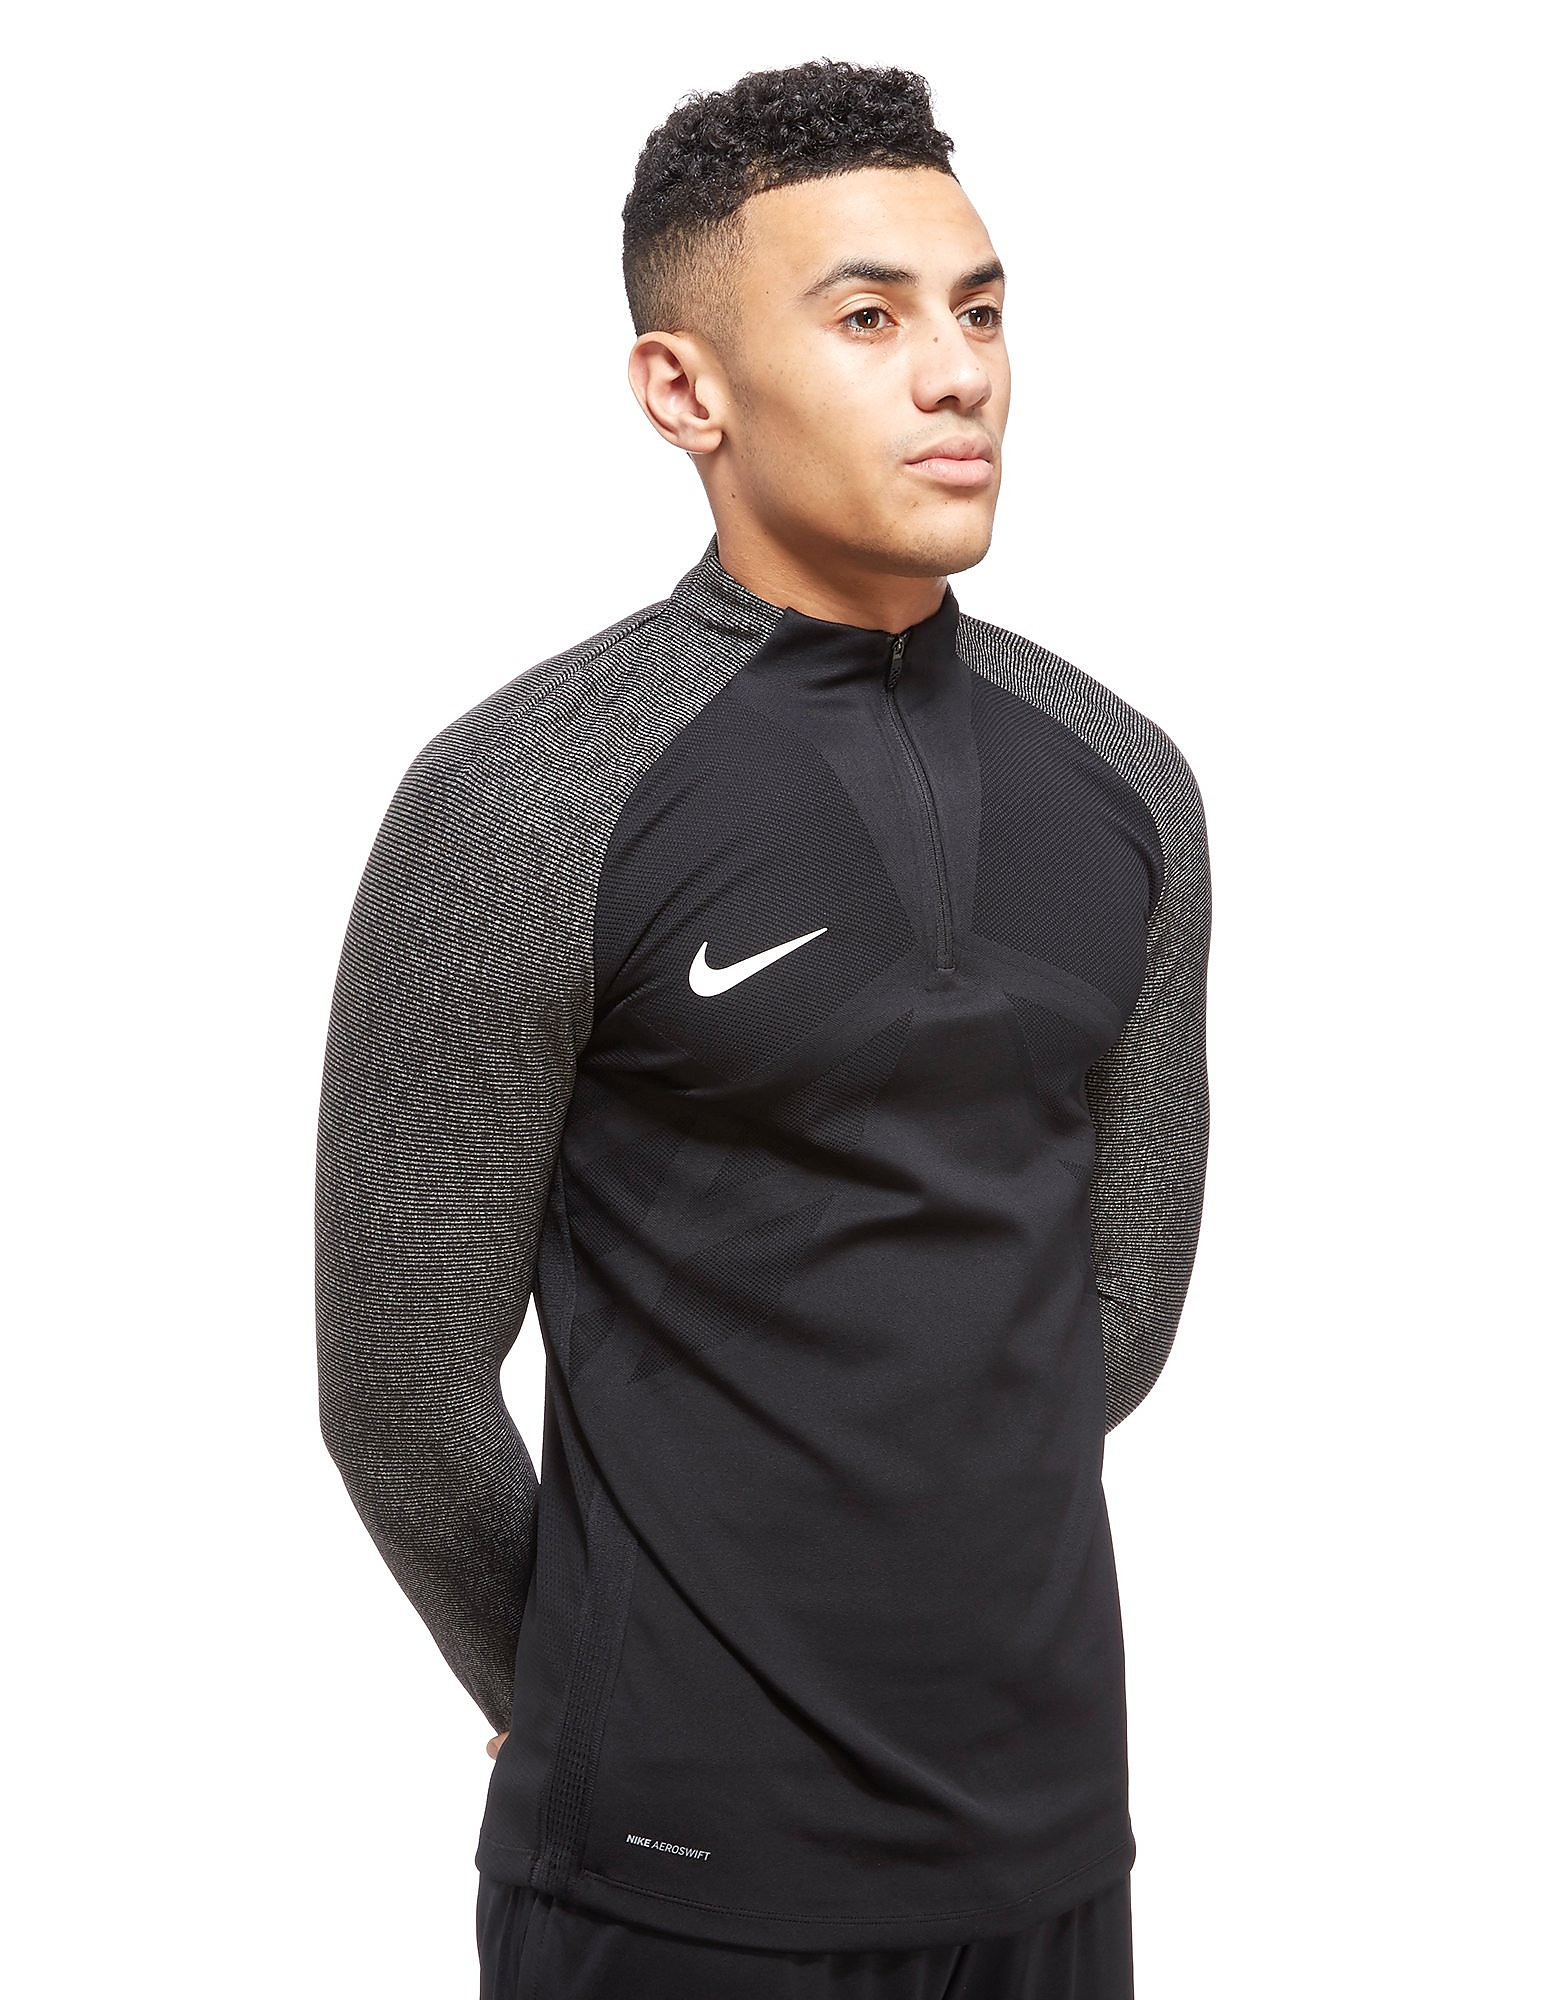 Nike Aeroswift Strike Drill Football Top